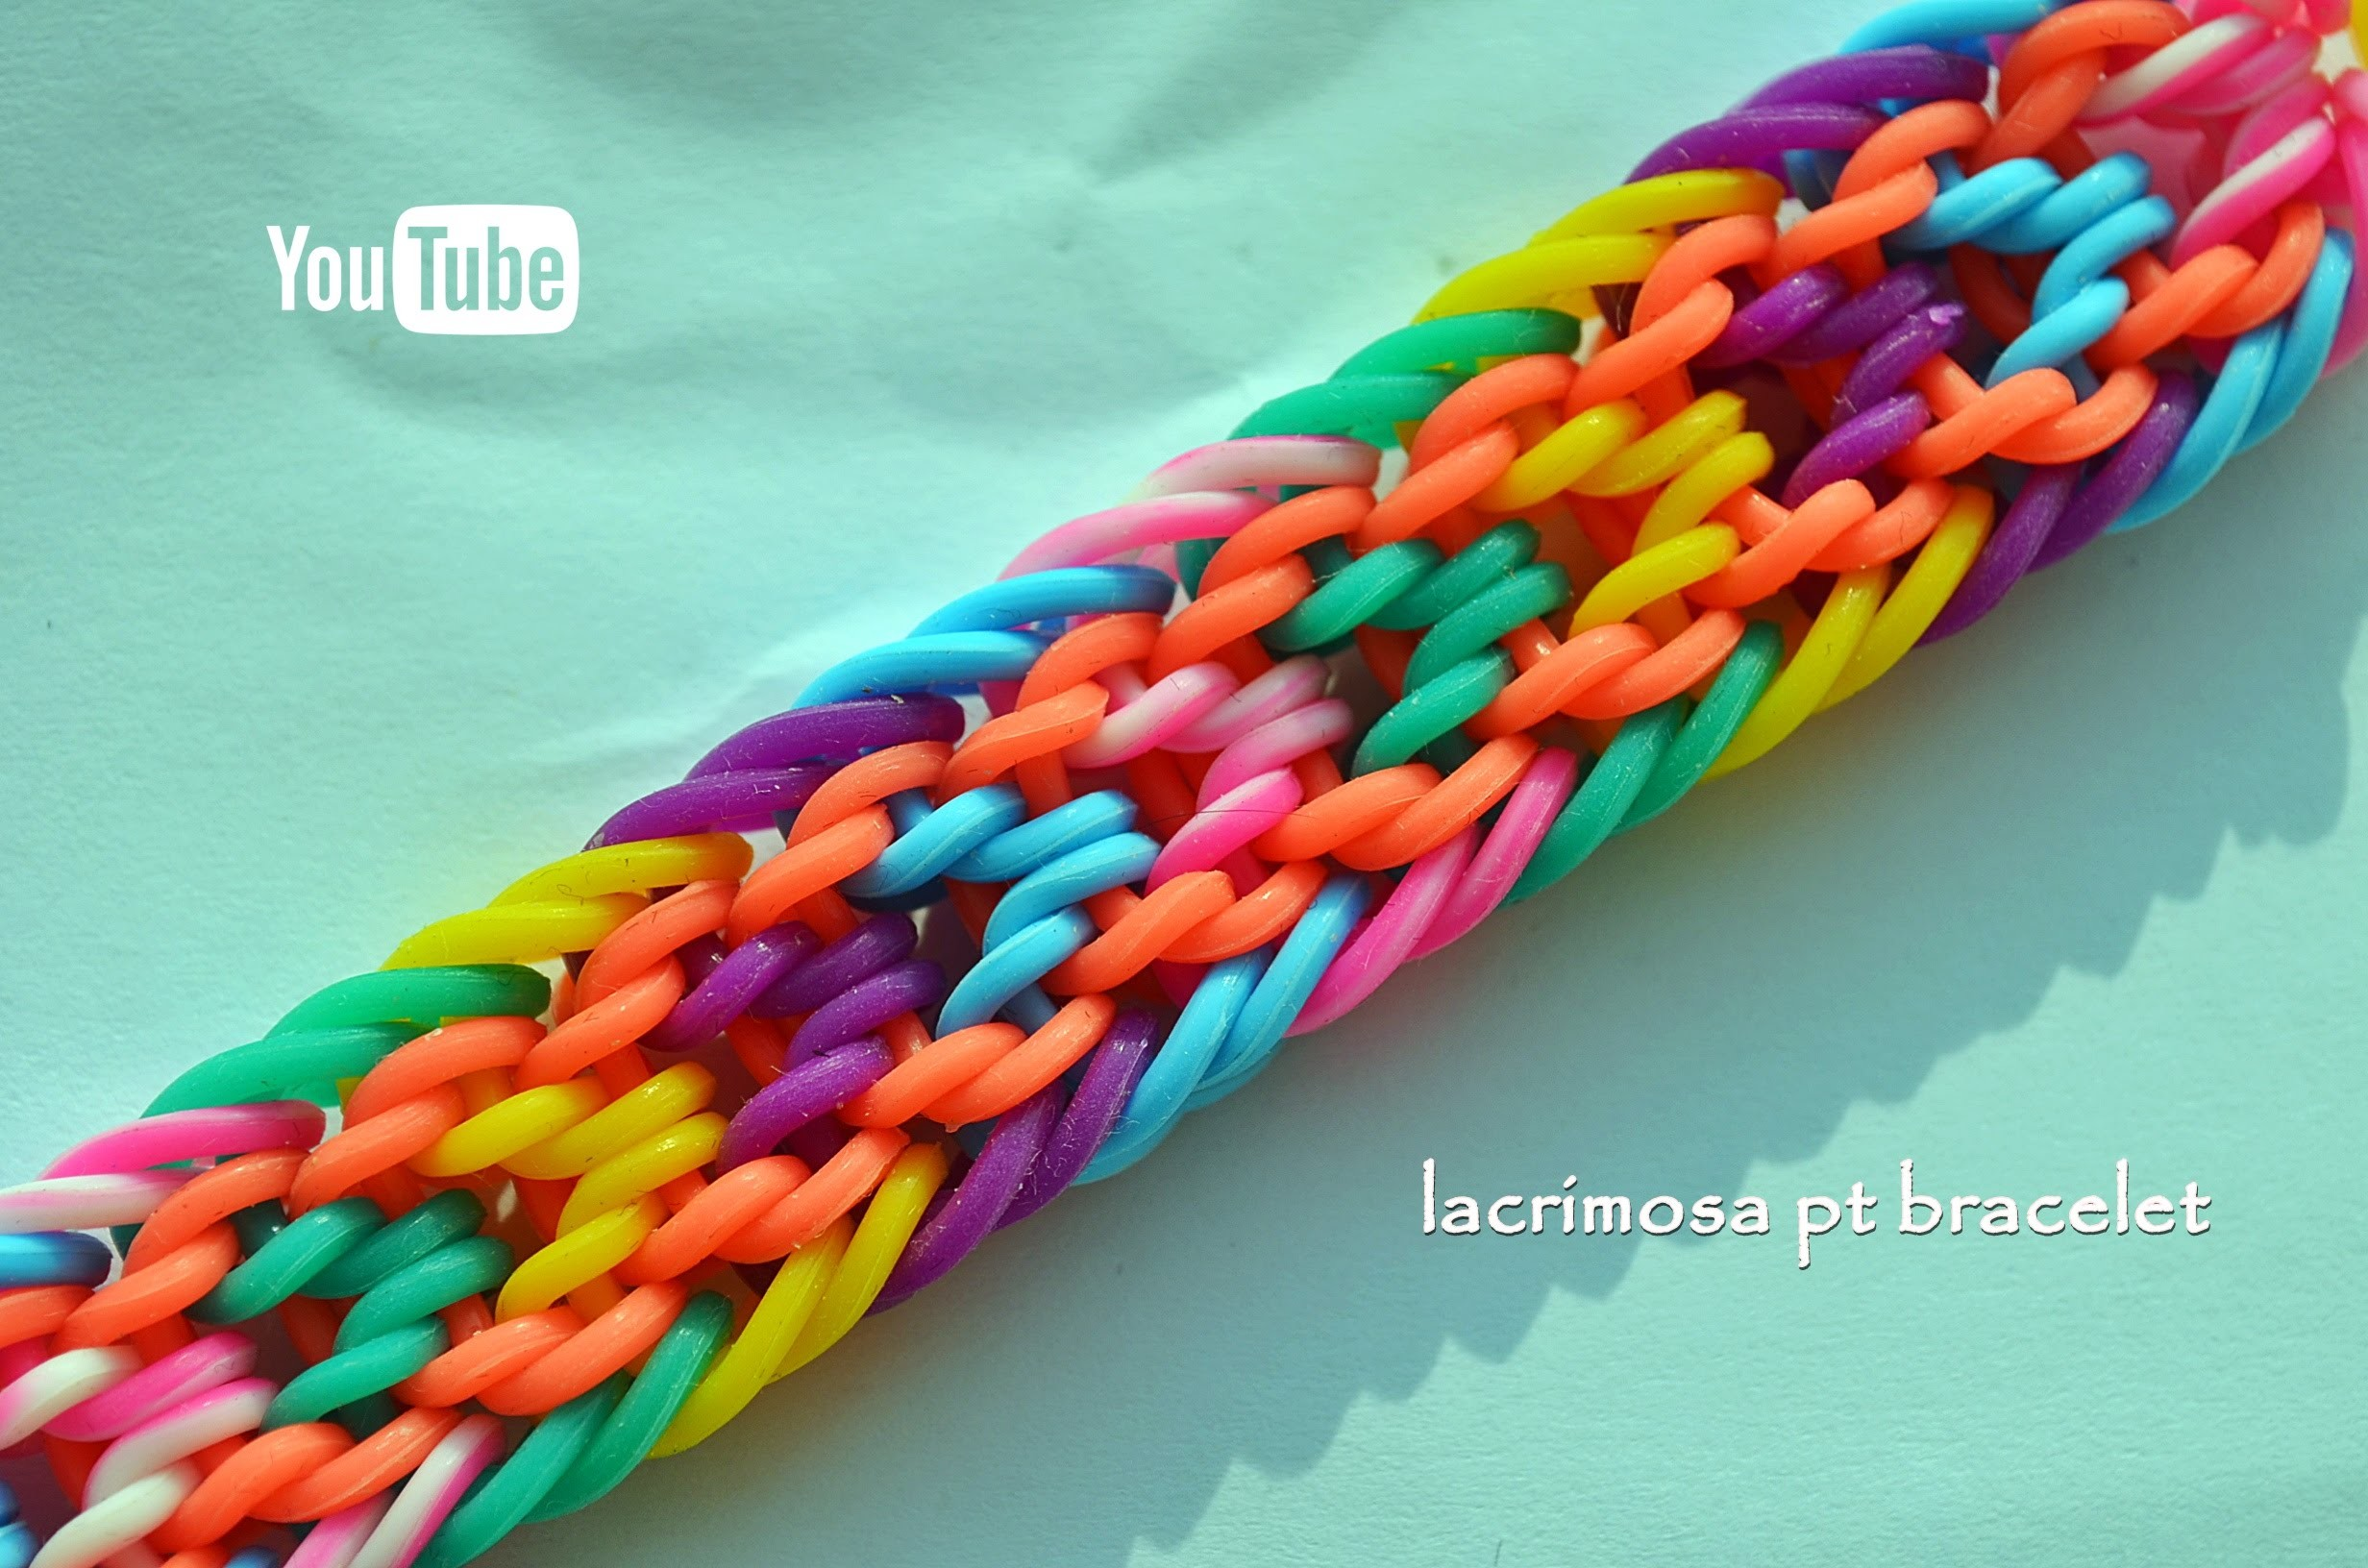 LACRIMOSA PT BRACELET HOOK ONLY DESIGN TUTORIAL